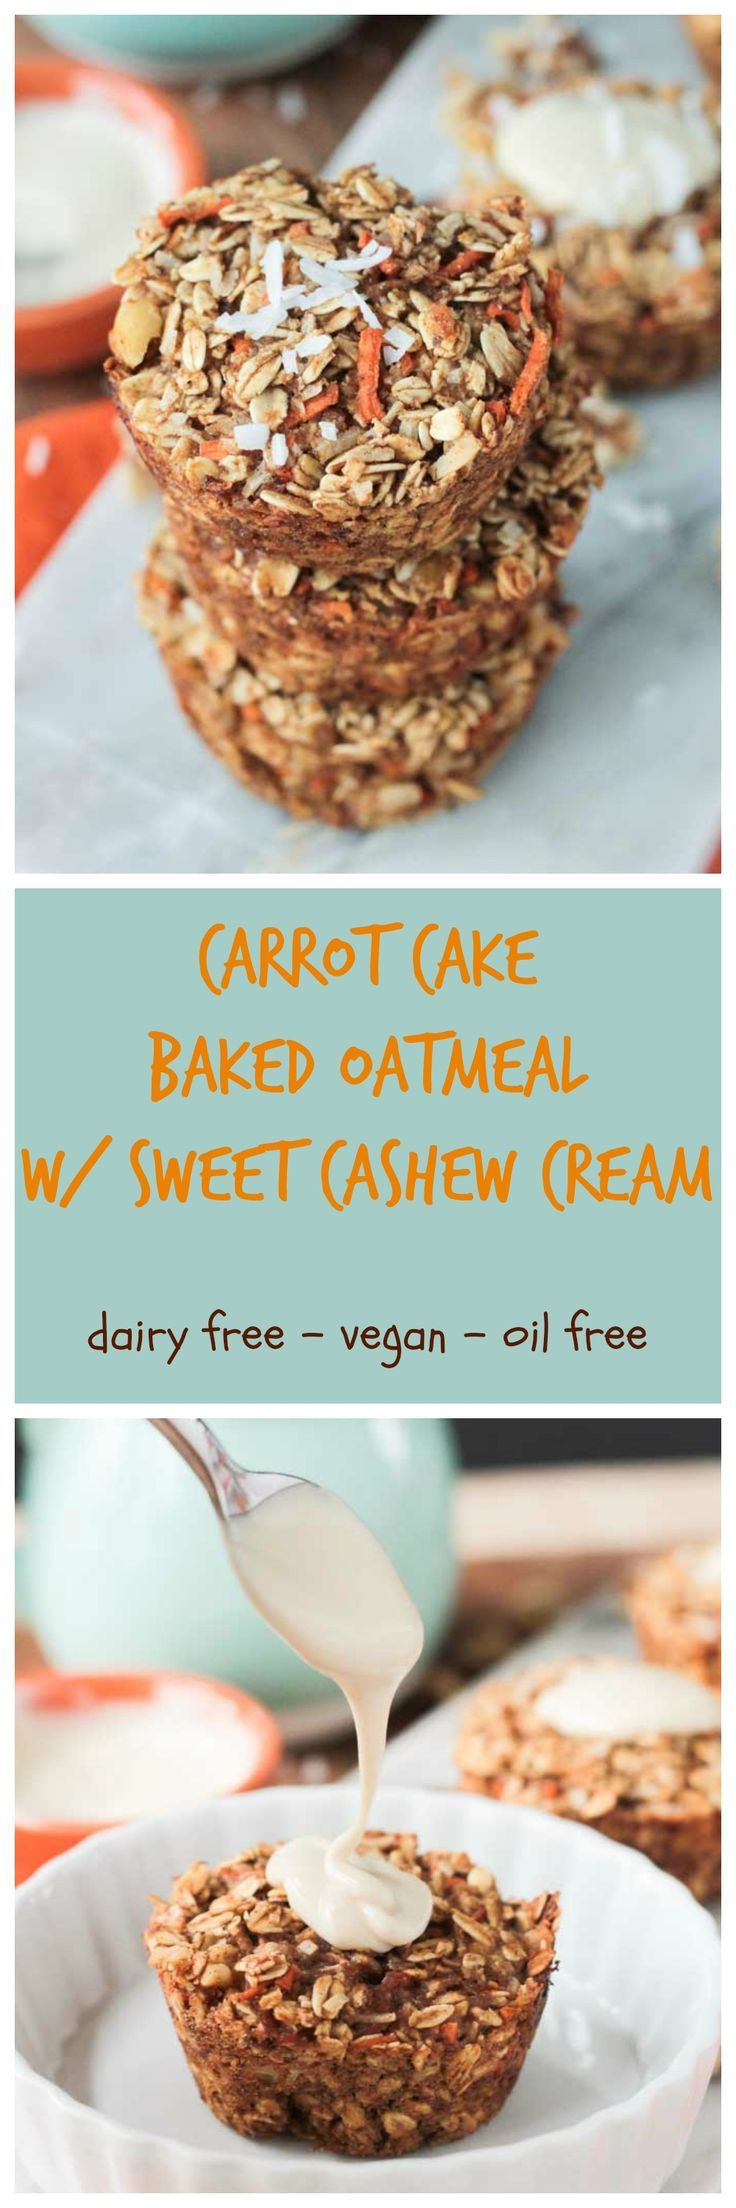 210 best New Recipes for 2018 images on Pinterest | Clean eating ...